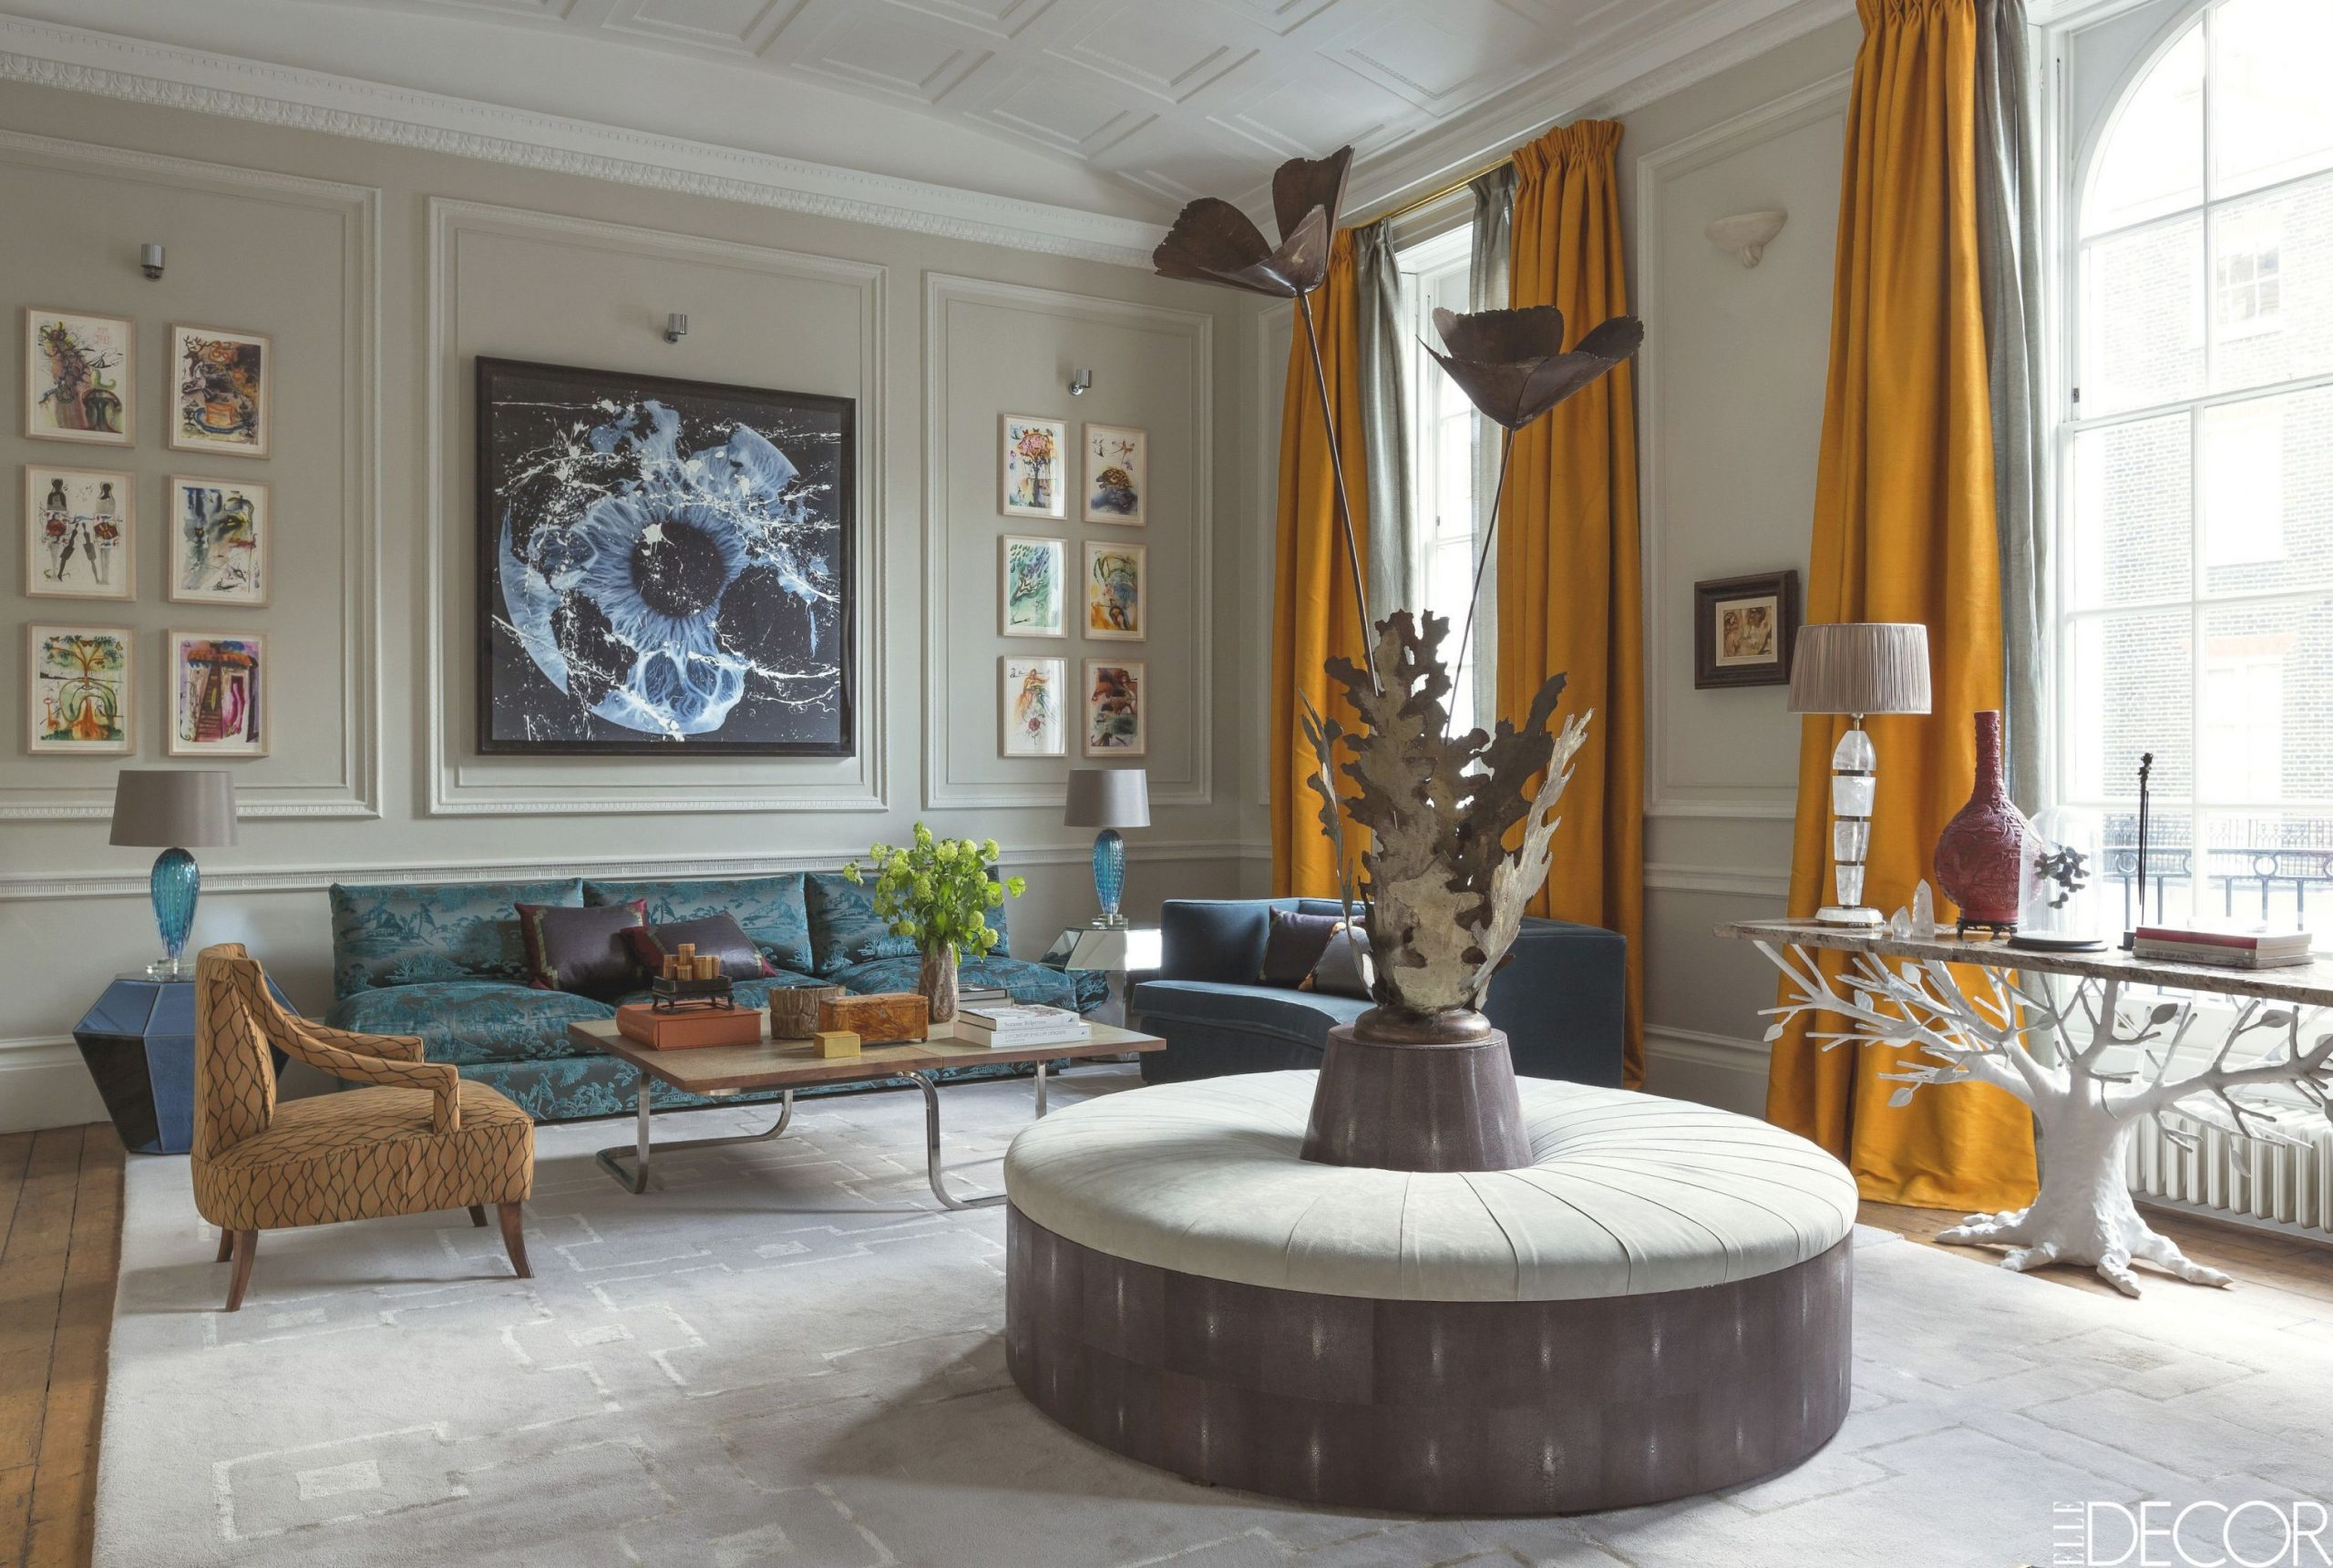 54 Luxury Living Room Ideas Stylish Living Room Design Photos With Ideas For Living Room Decoration Modern Awesome Decors